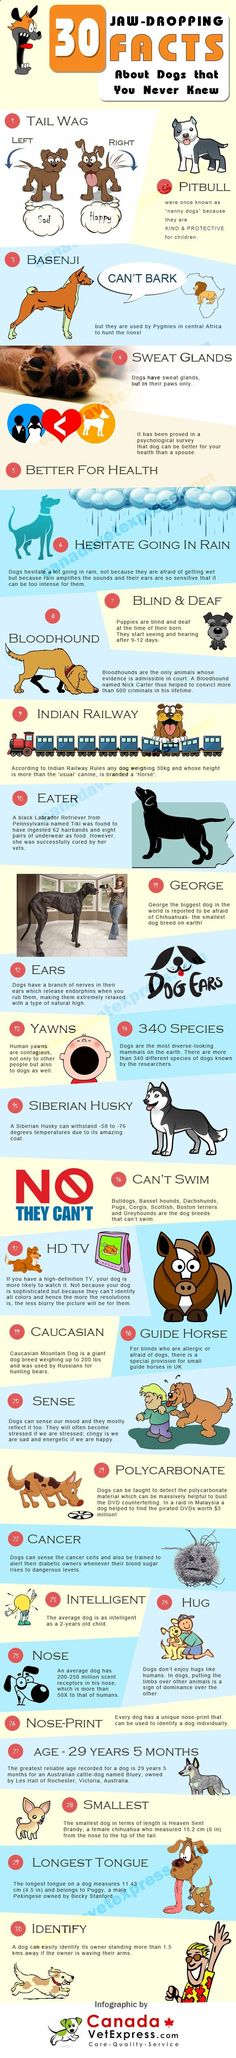 Pet Training - 30 Fun Facts About Dogs | Animal Bliss This article help us to teach our dogs to bite just exactly the things that he needs to bite